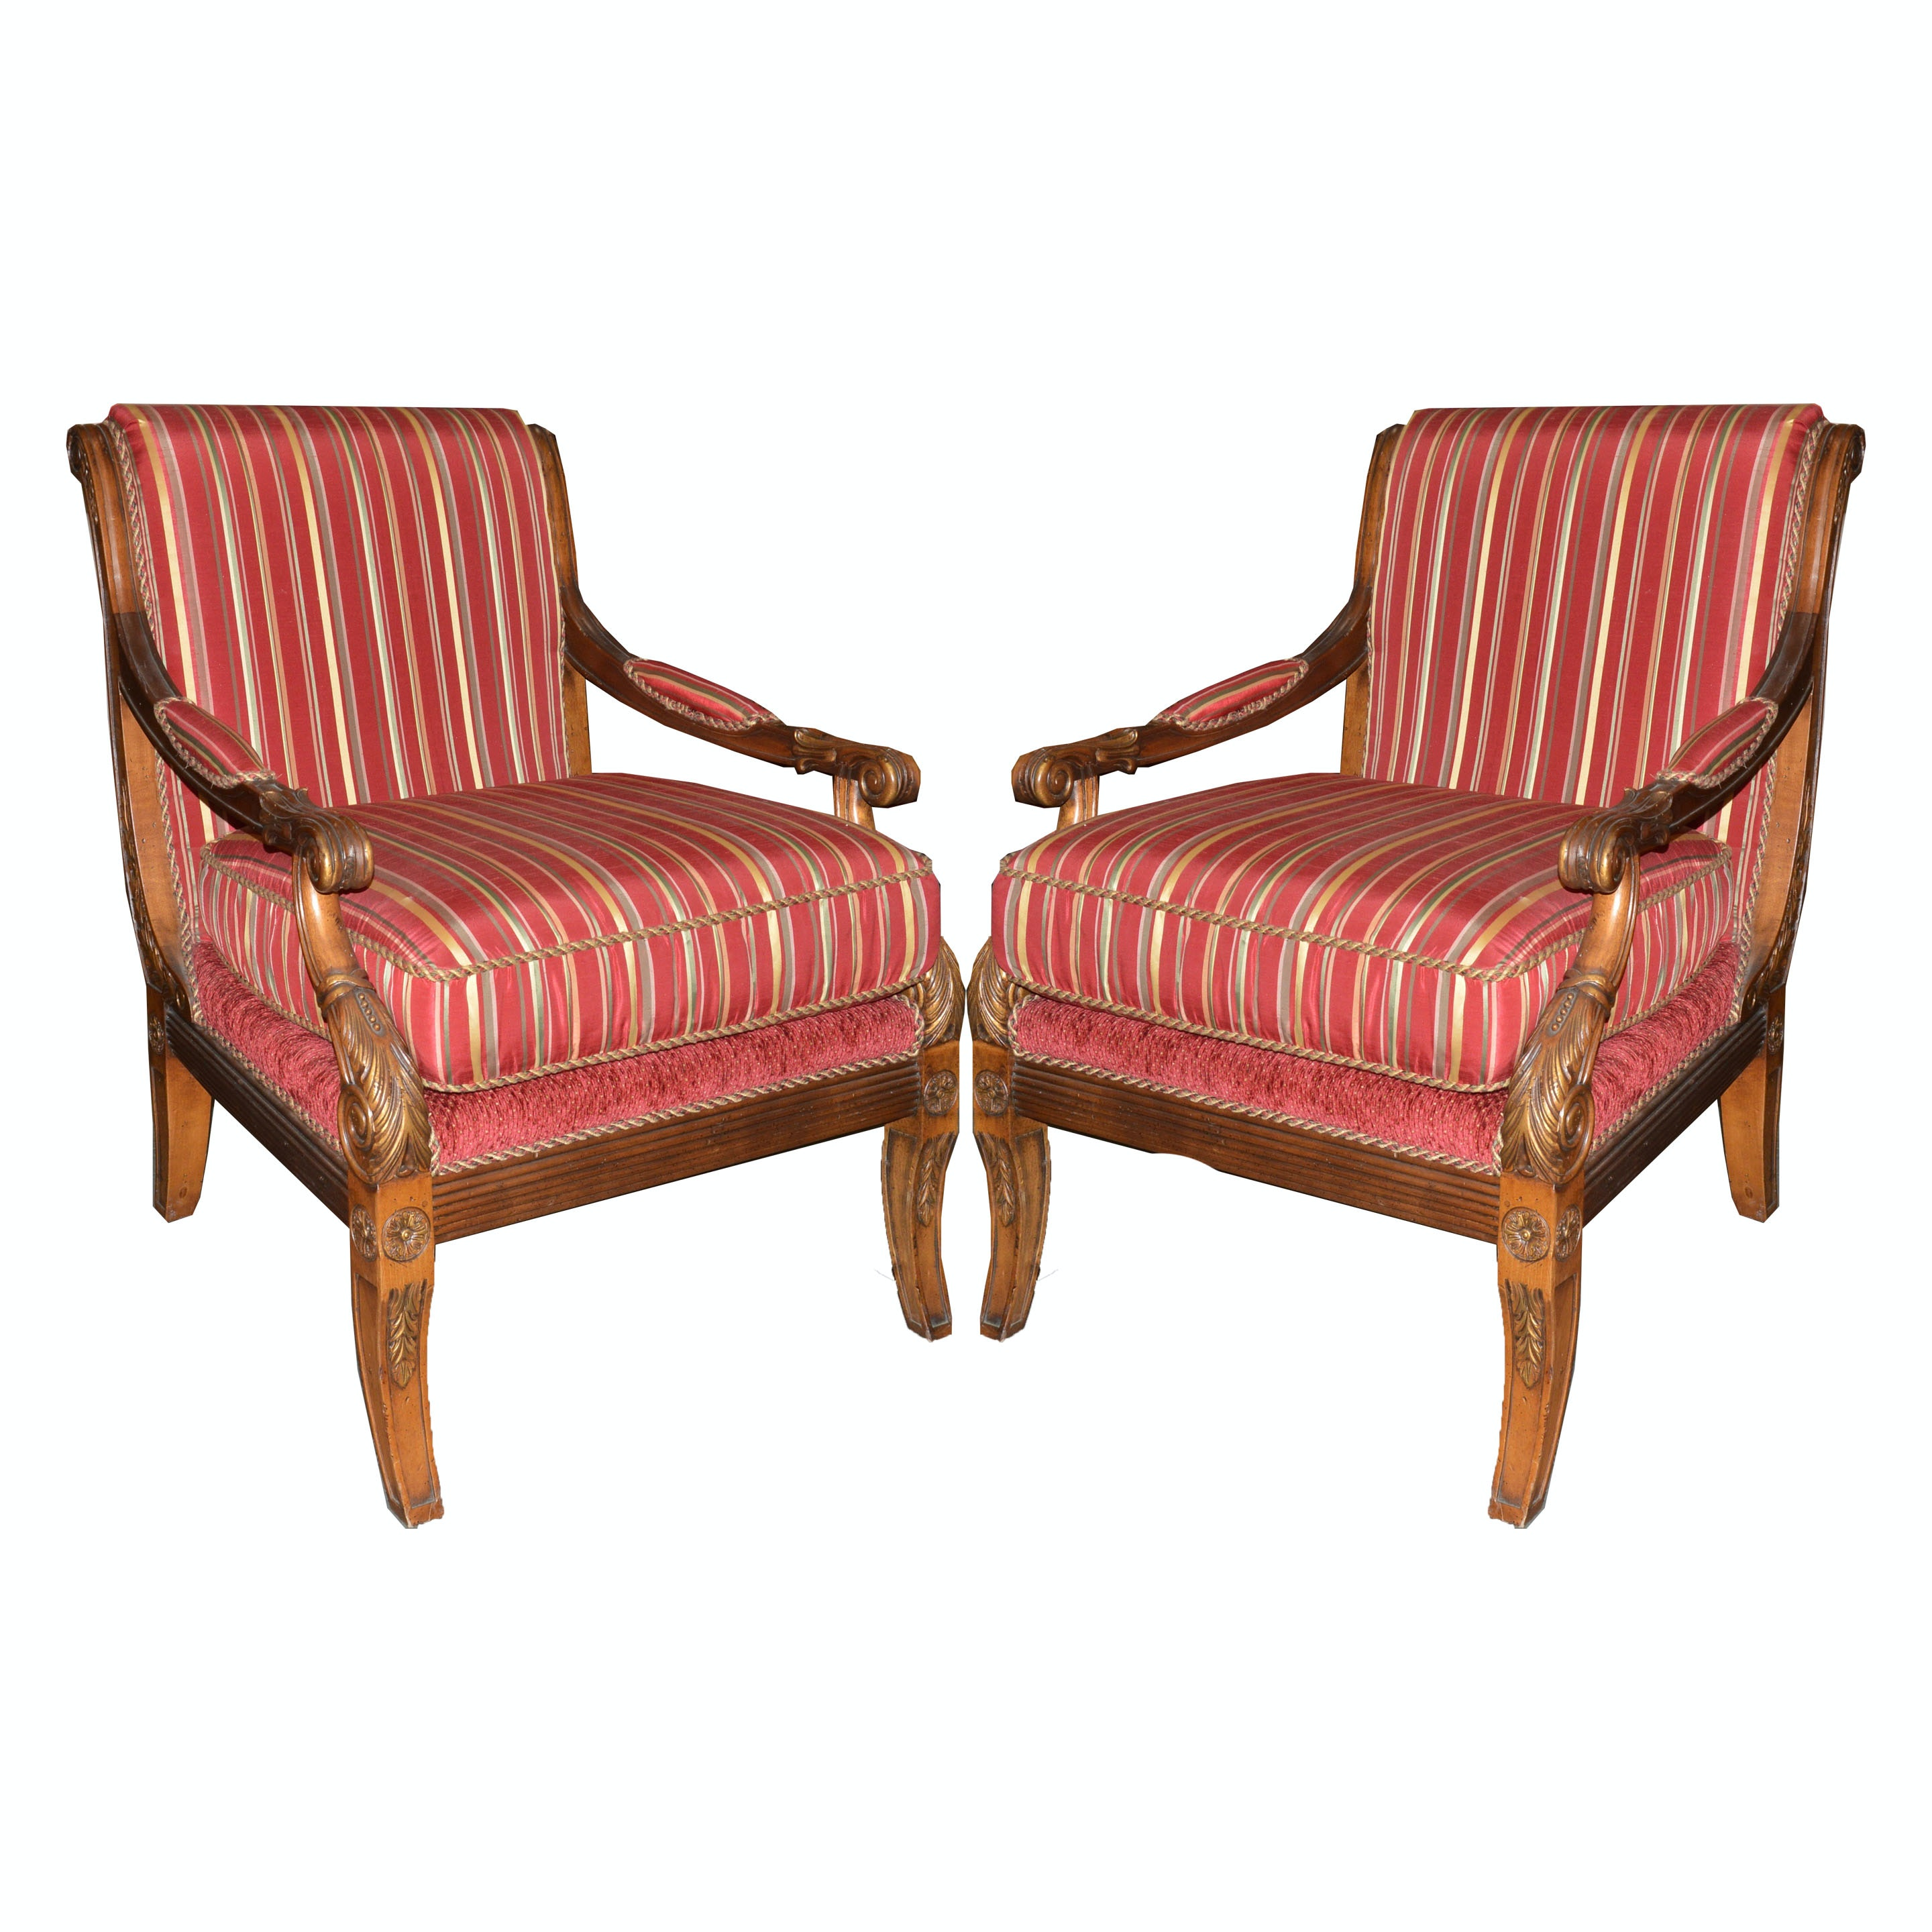 Pair of Upholstered Armchairs in Carved Wood Frames